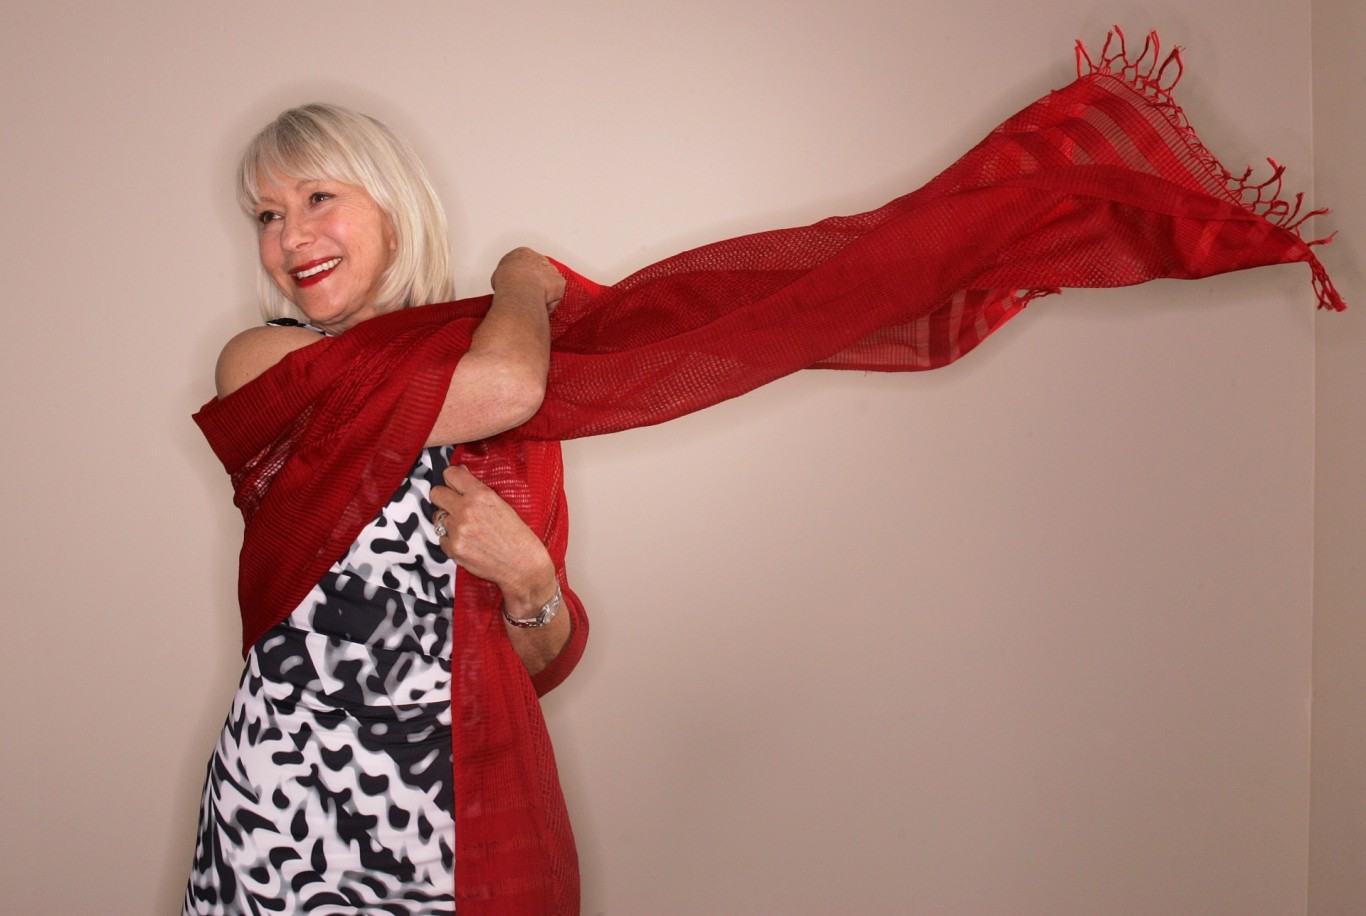 Helen Mirren poses with a red scarf in 2010